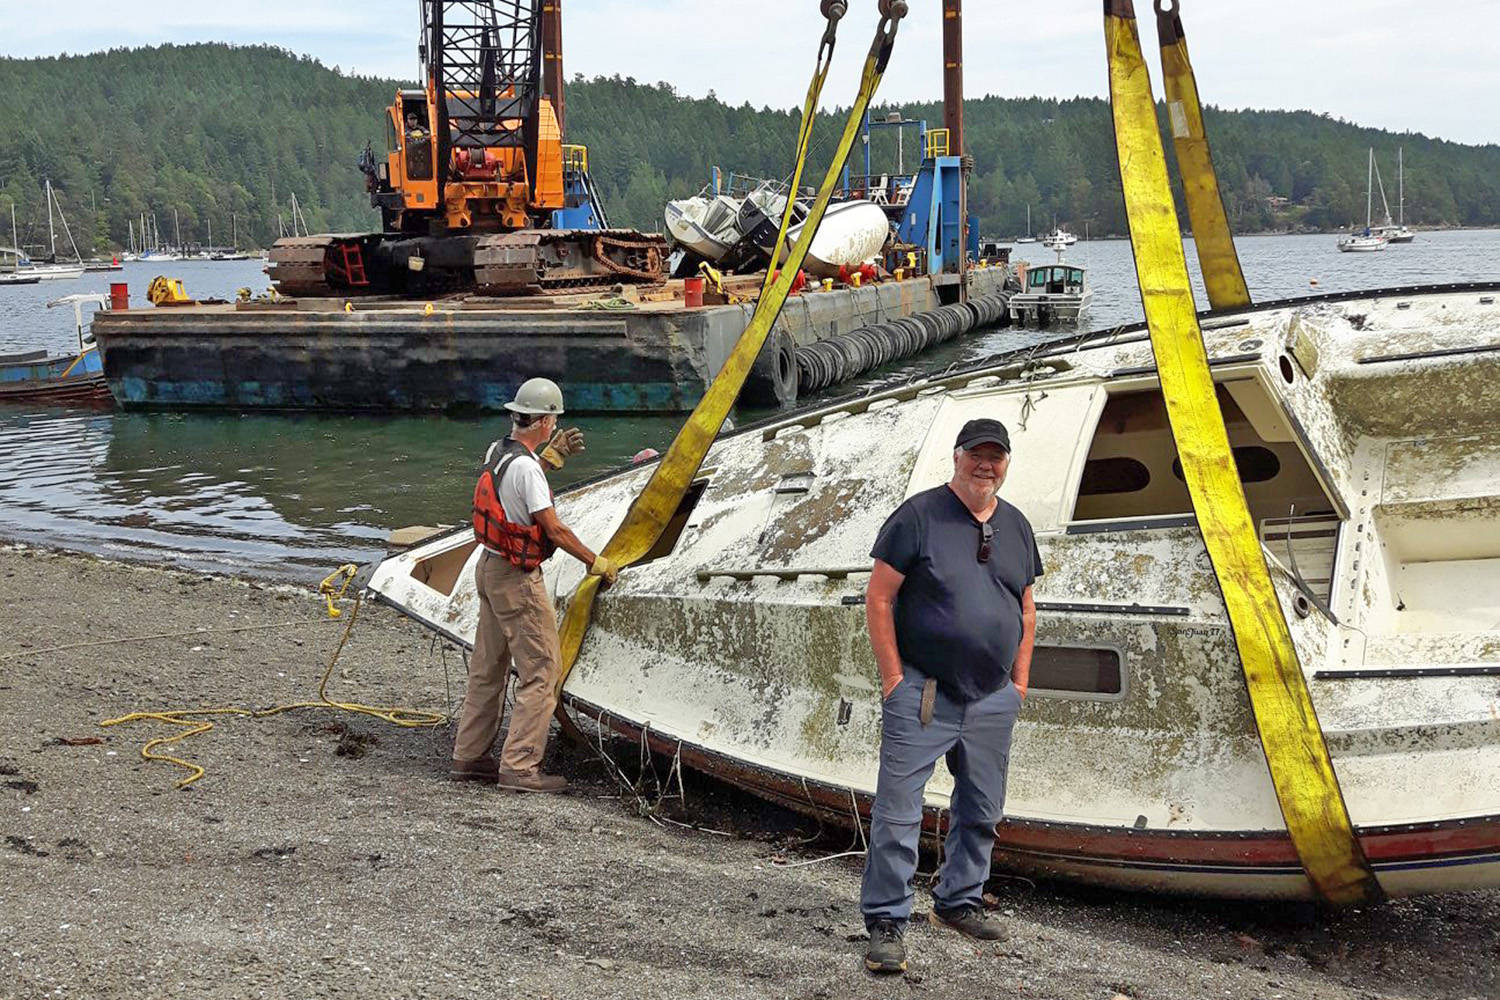 Dead Boats Society moving towards 100 wreckages removed from the Salish Sea